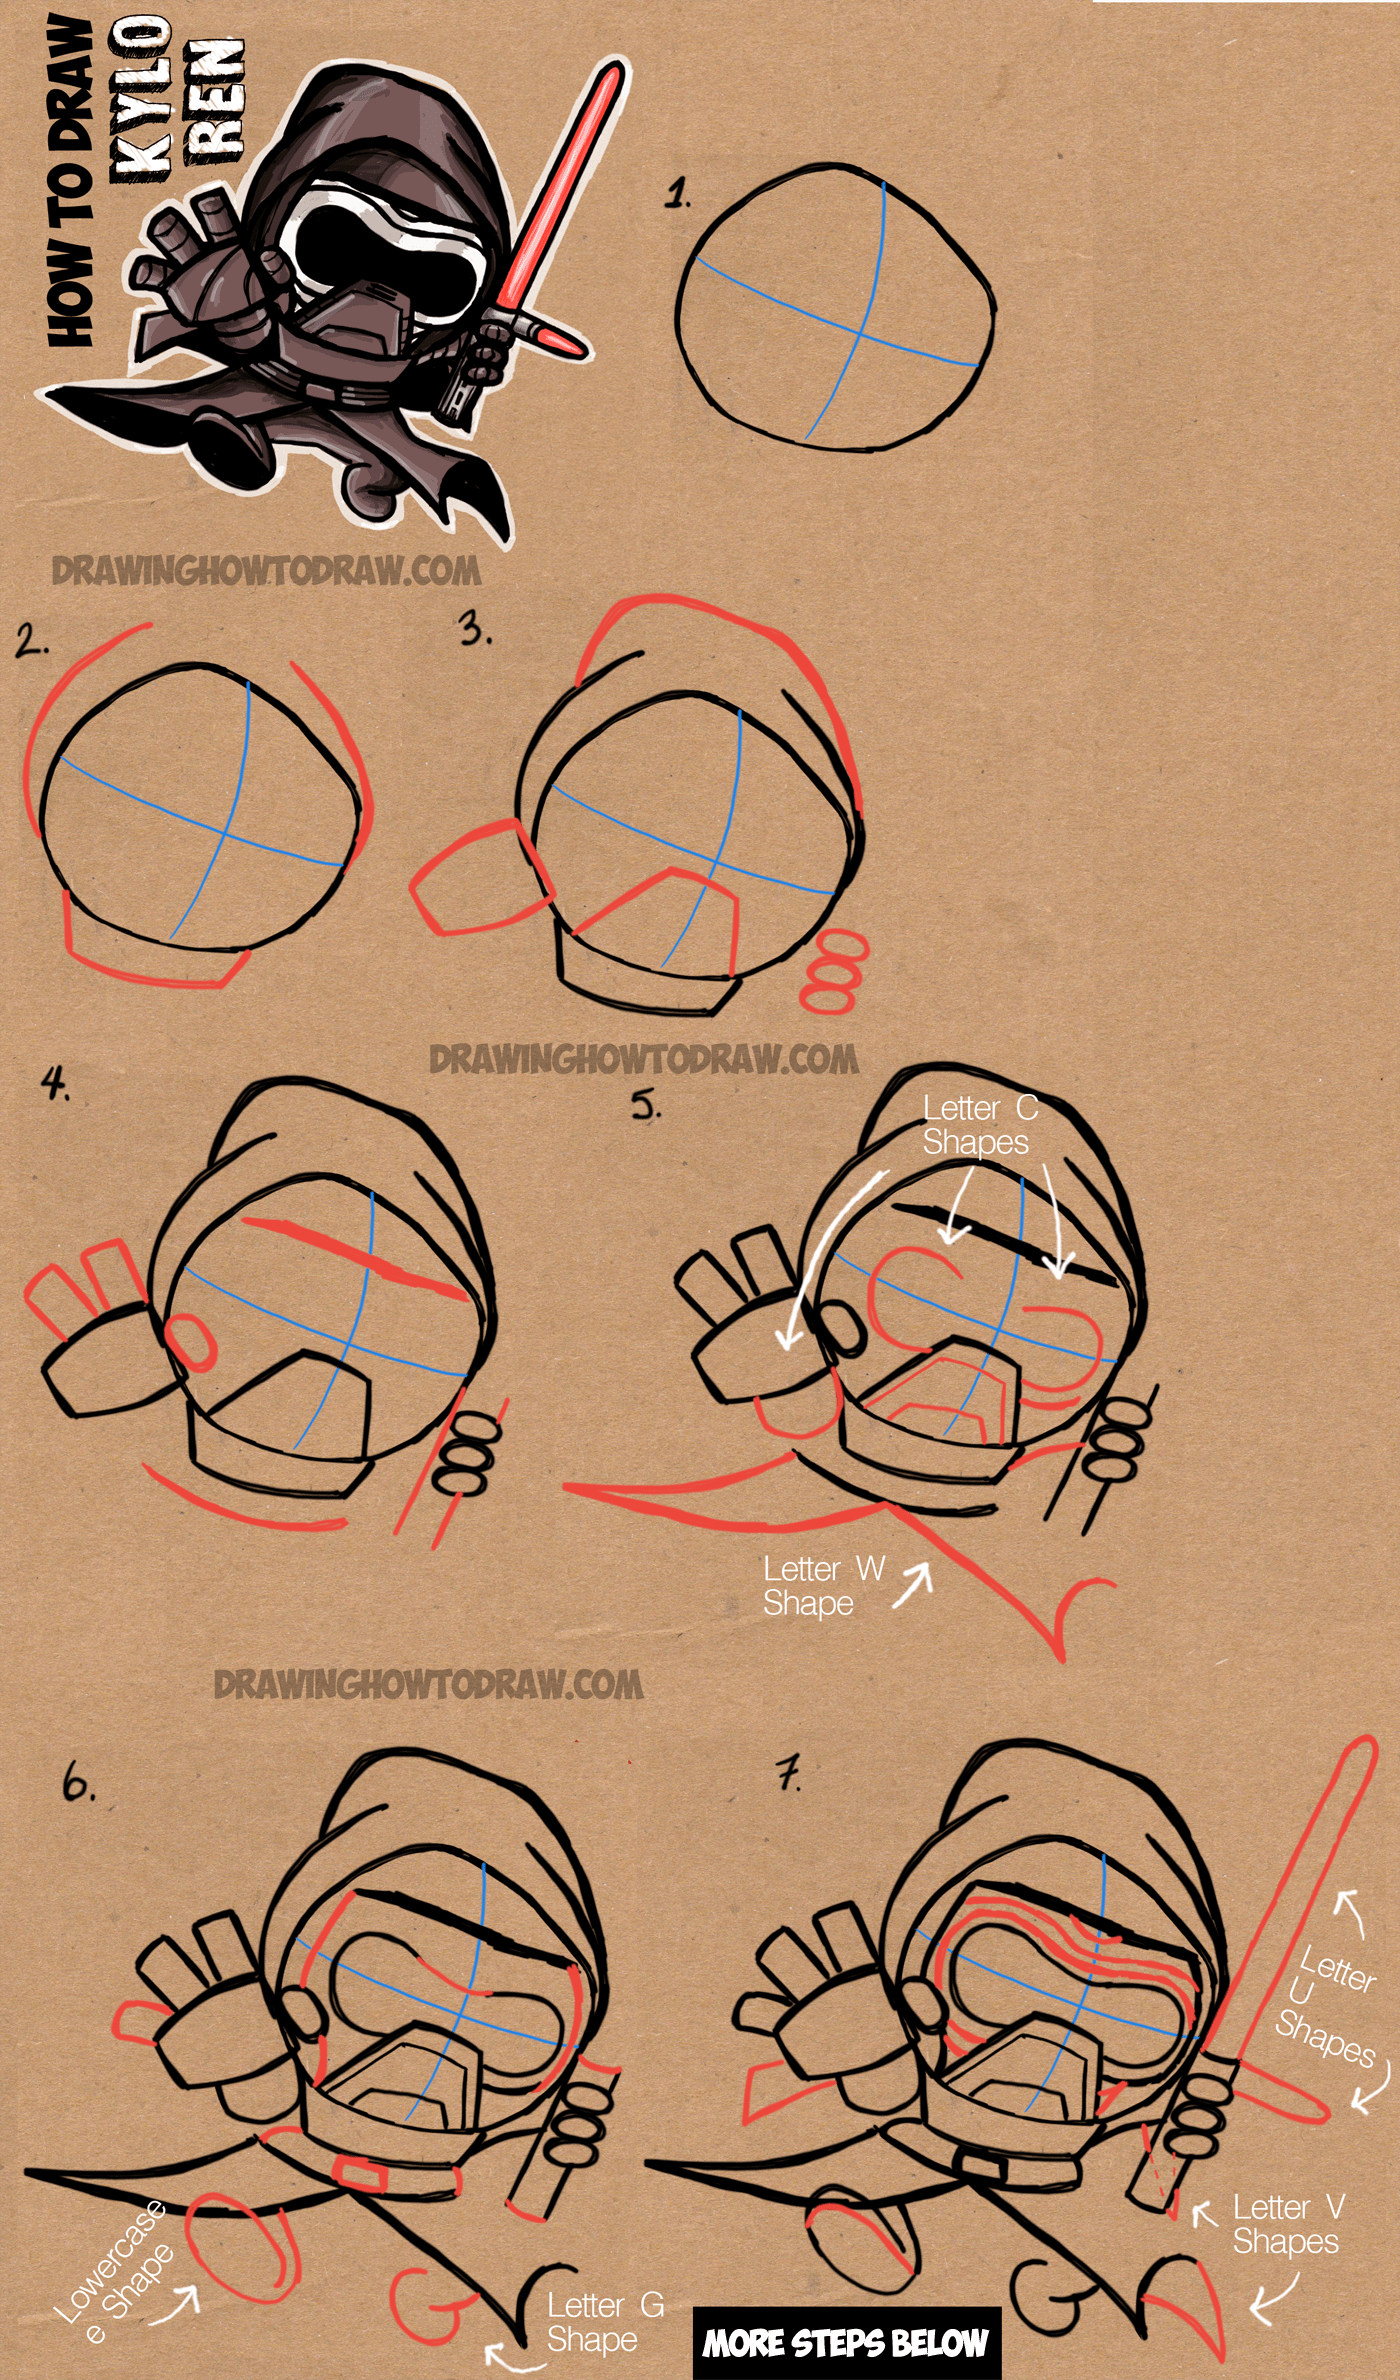 How To Draw Cute Chibi Cartoon Kylo Ren From Star Wars The